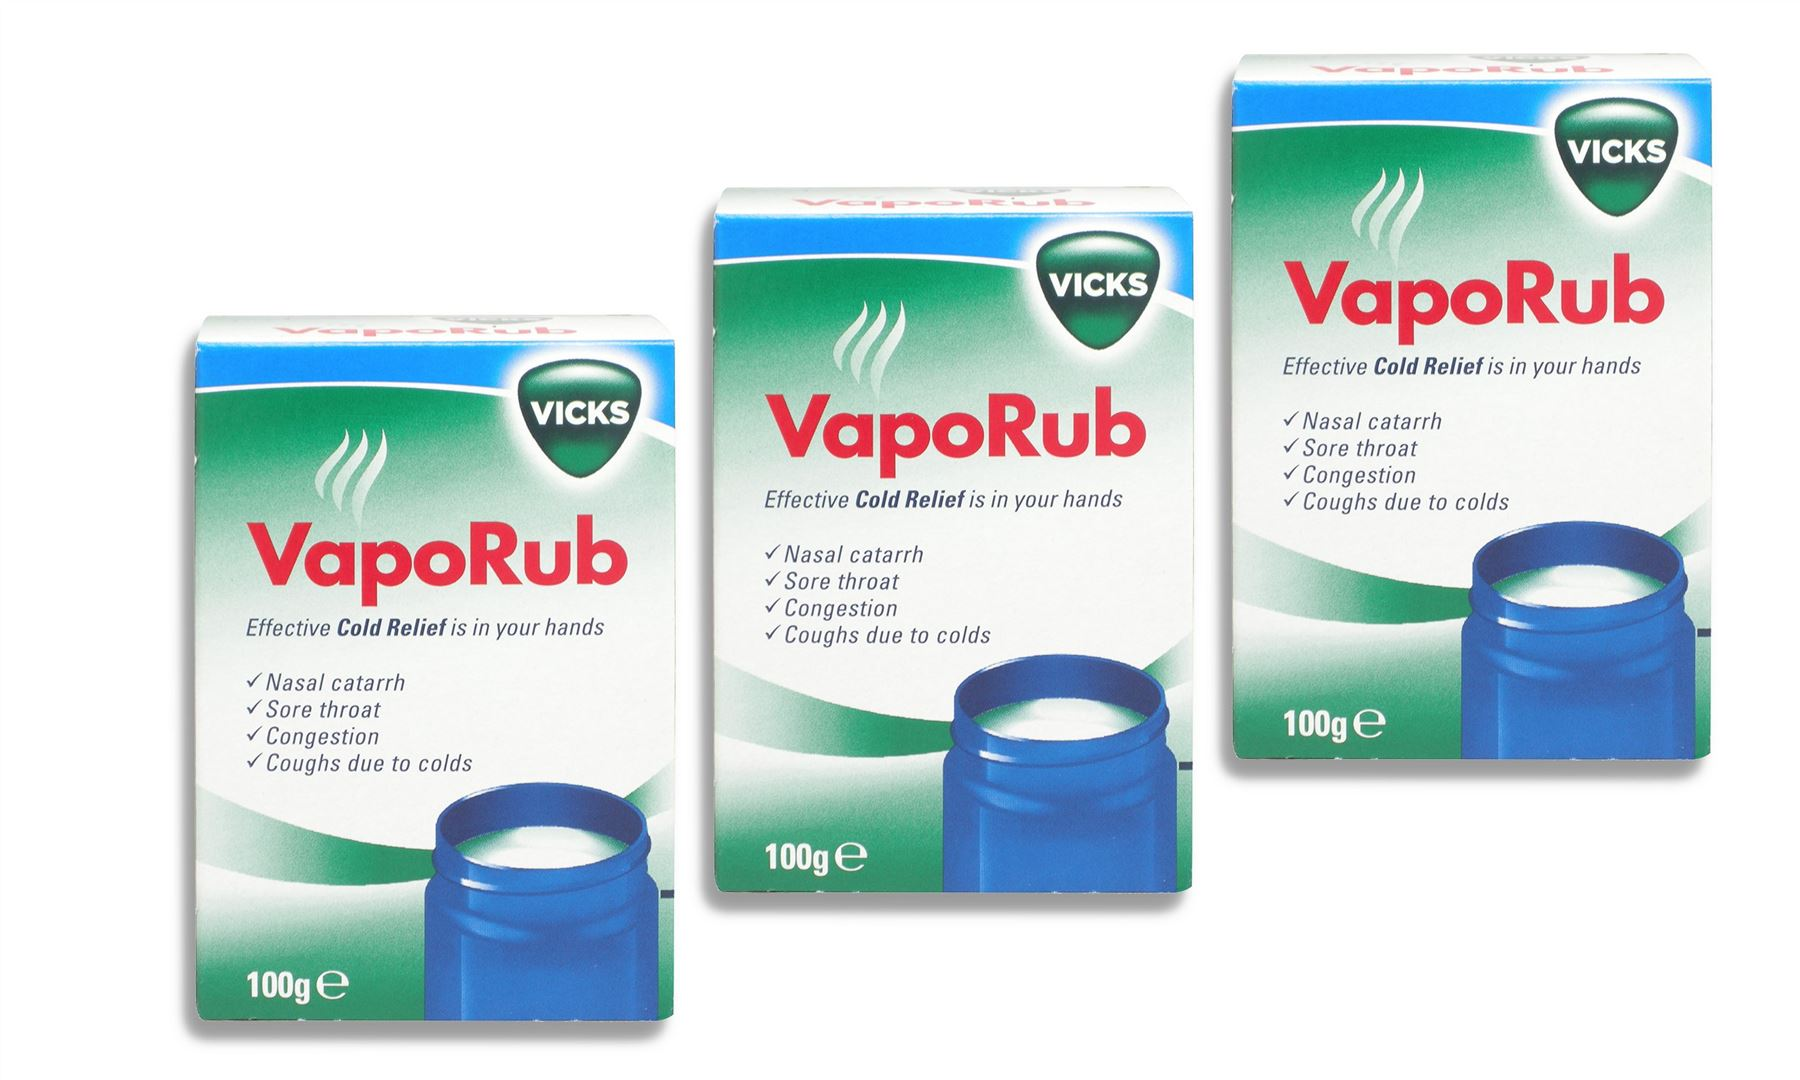 vicks an indian cough and cold Temporarily relieves common cold and flu symptoms: nasal congestion, cough due to minor throat and bronchial irritation, sore throat, headache, minor aches and pains.